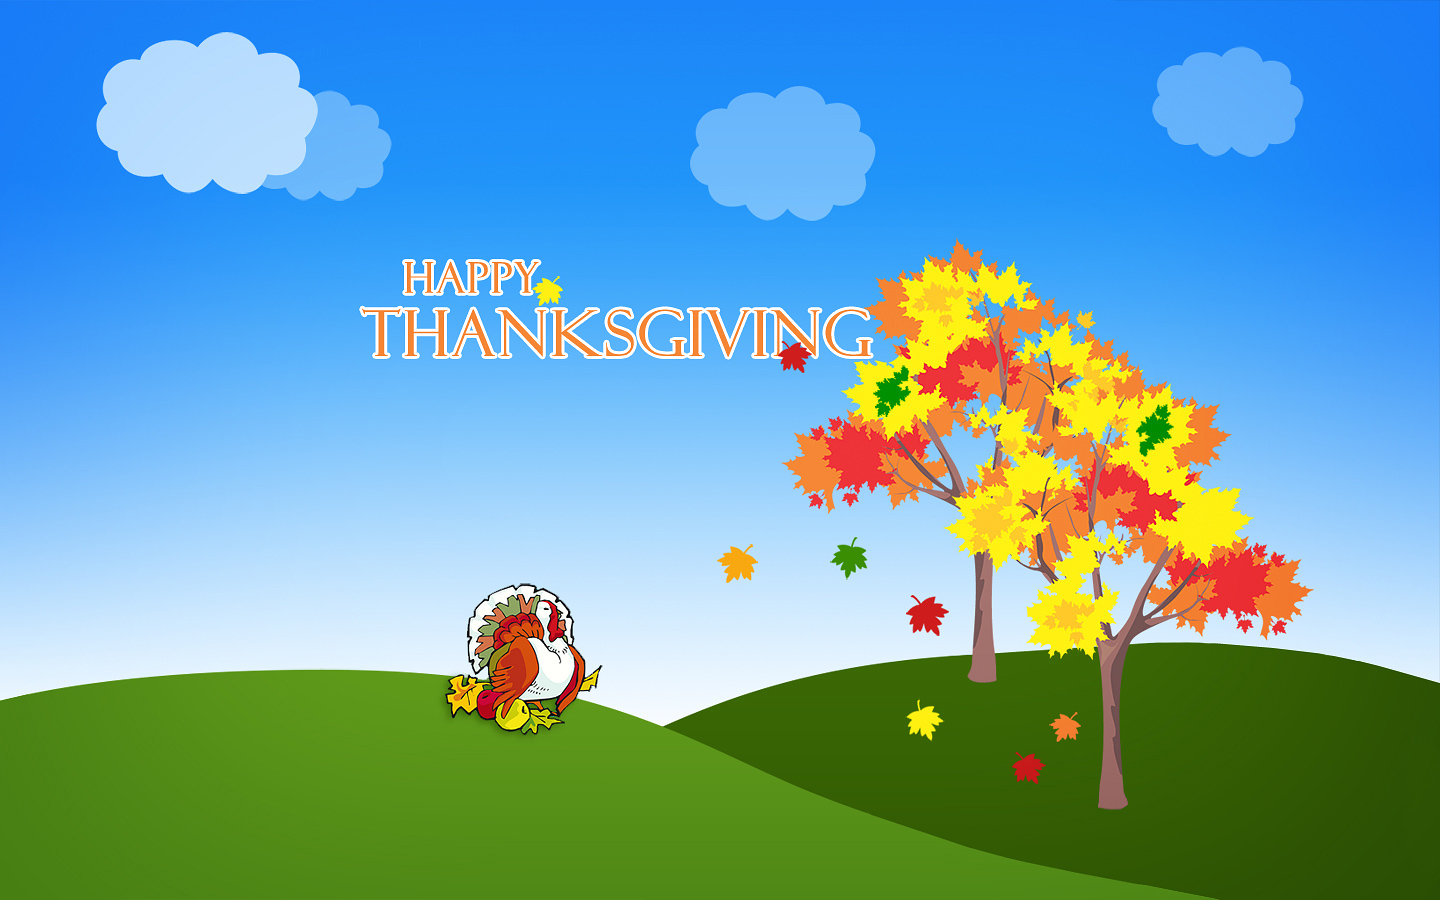 Free Thanksgiving Desktop Wallpapers